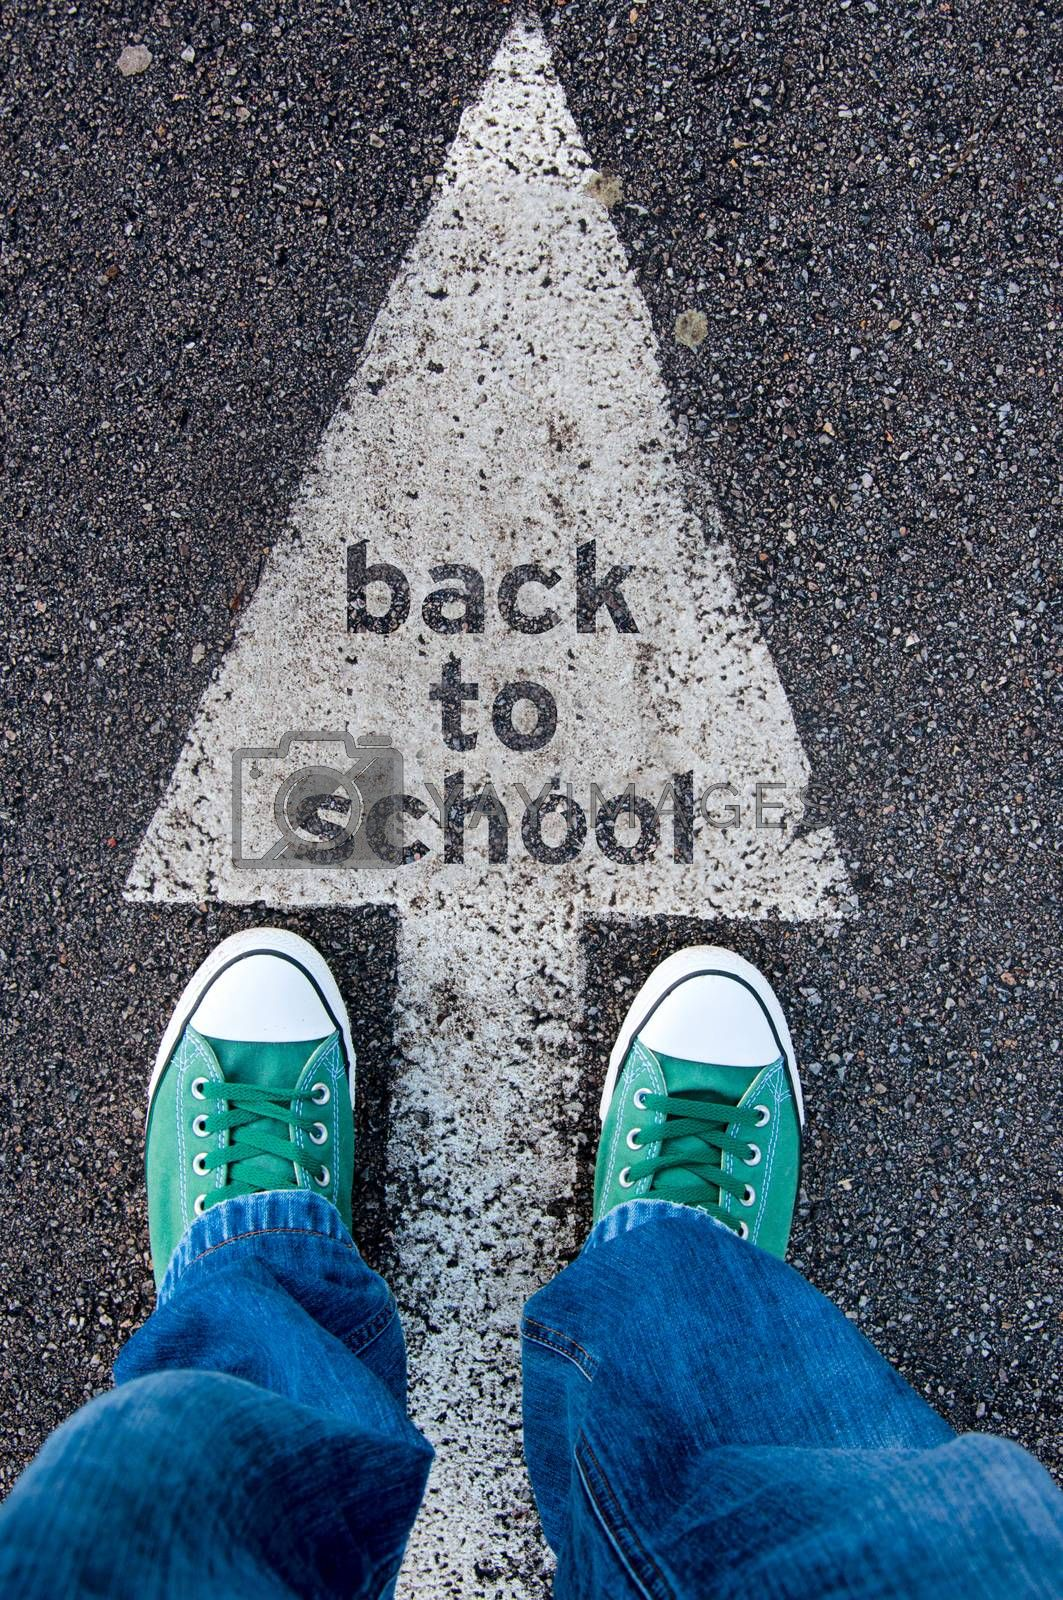 Back to school by badmanproduction